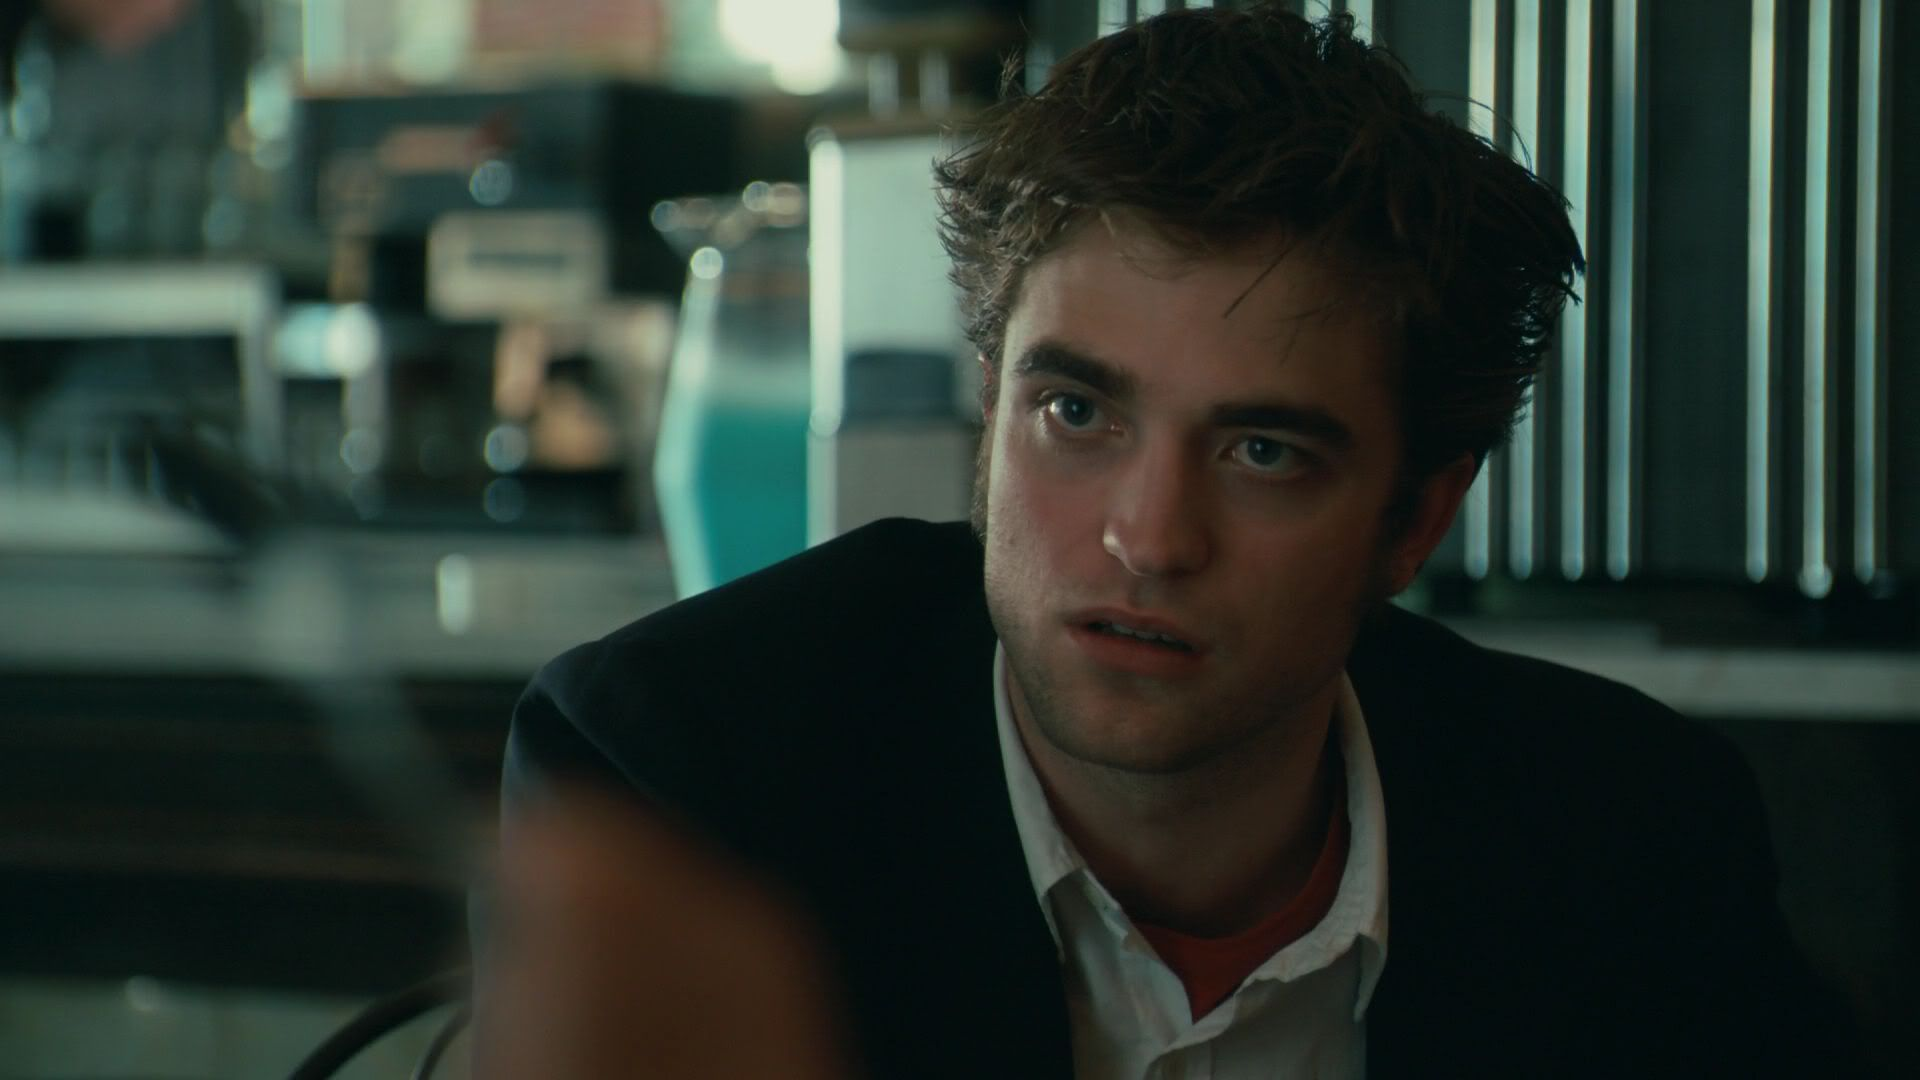 Películas de Robert: Remember Me - Página 3 RememberMeRobertPattinson3